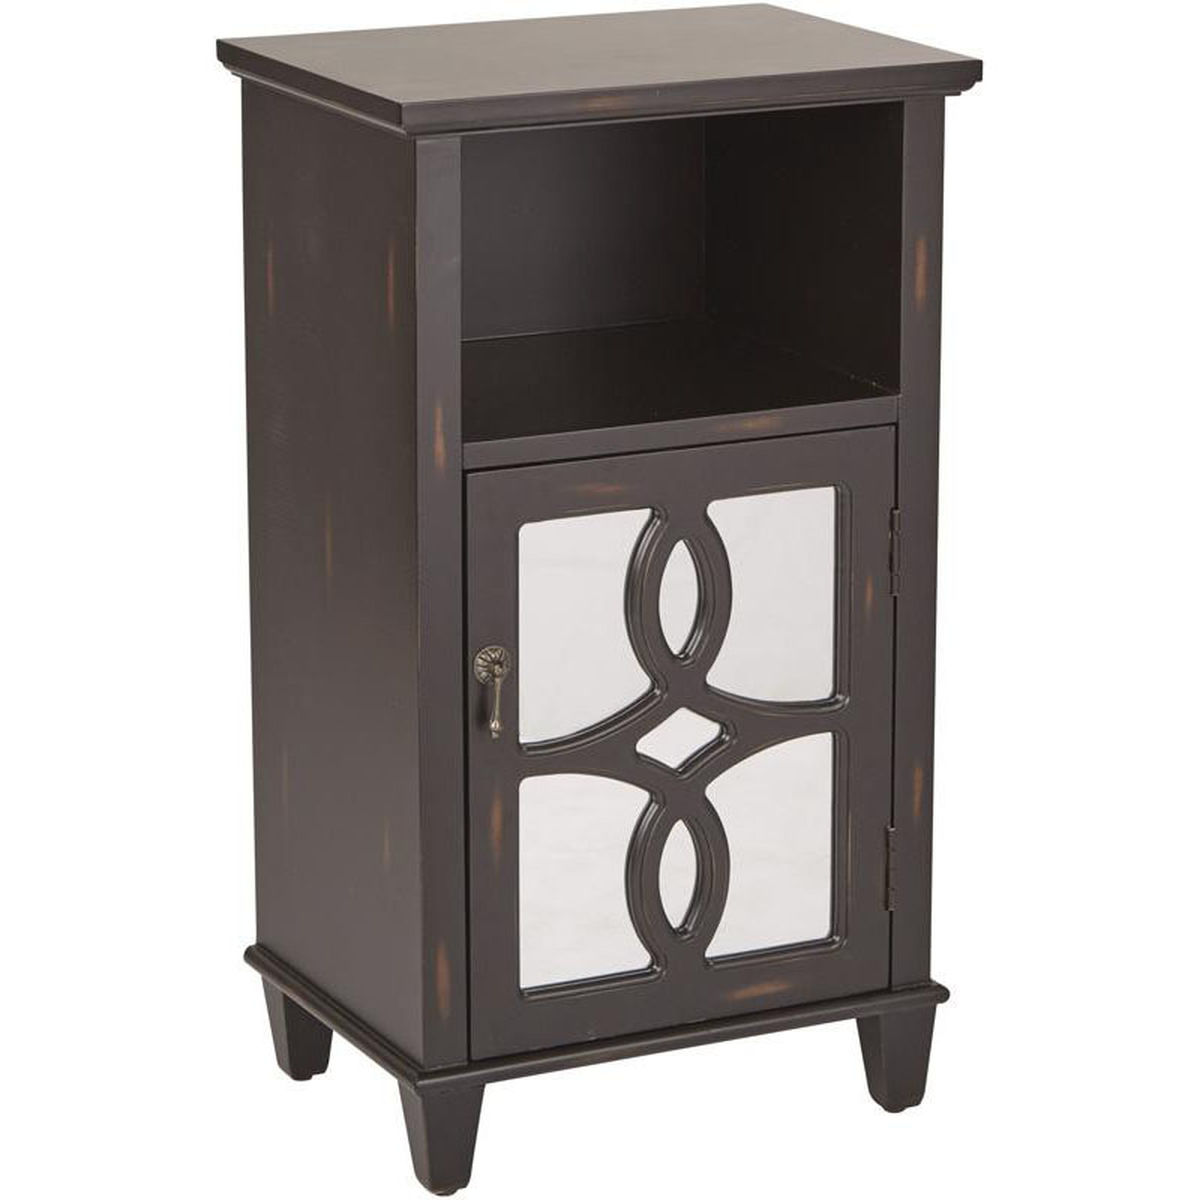 medina black accent table bizchair office star products main painted tables chests our inspired bassett hand antique now grey wood dining room doors modern kitchen clocks mid